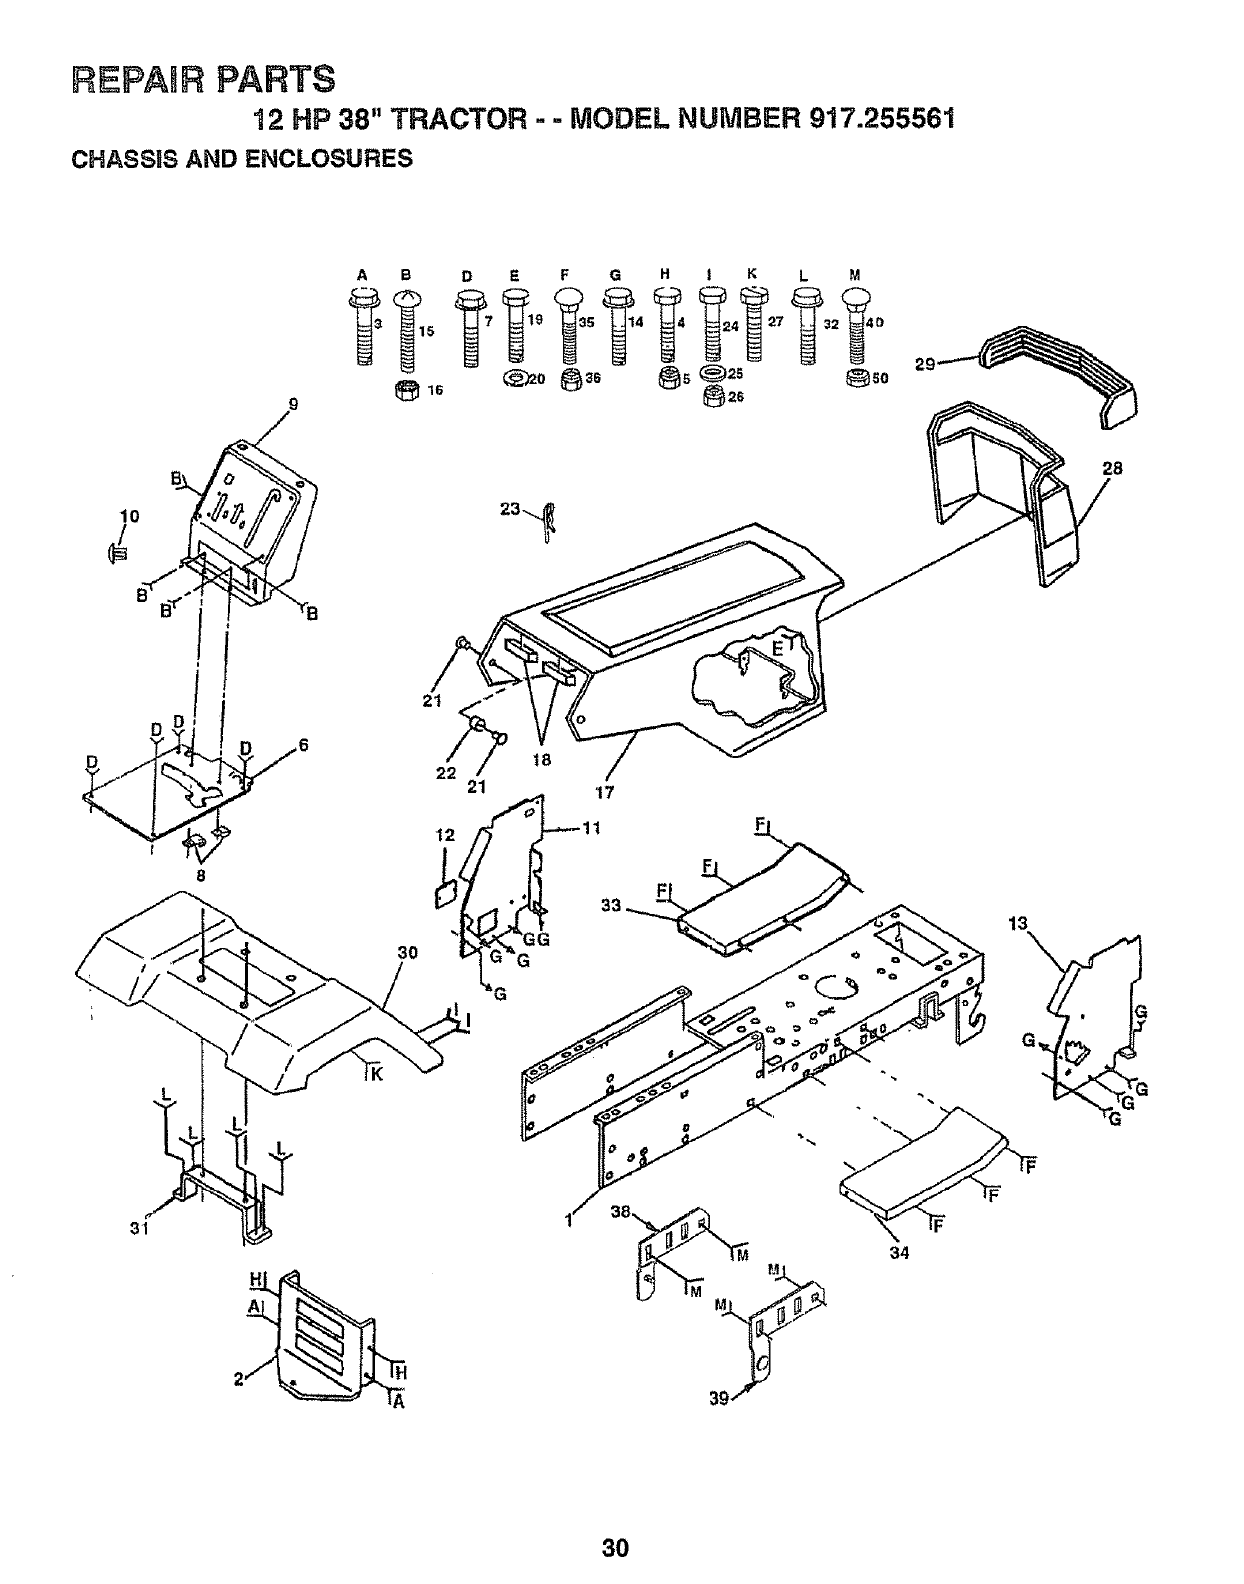 Page 30 of Craftsman Lawn Mower 917.255561 User Guide